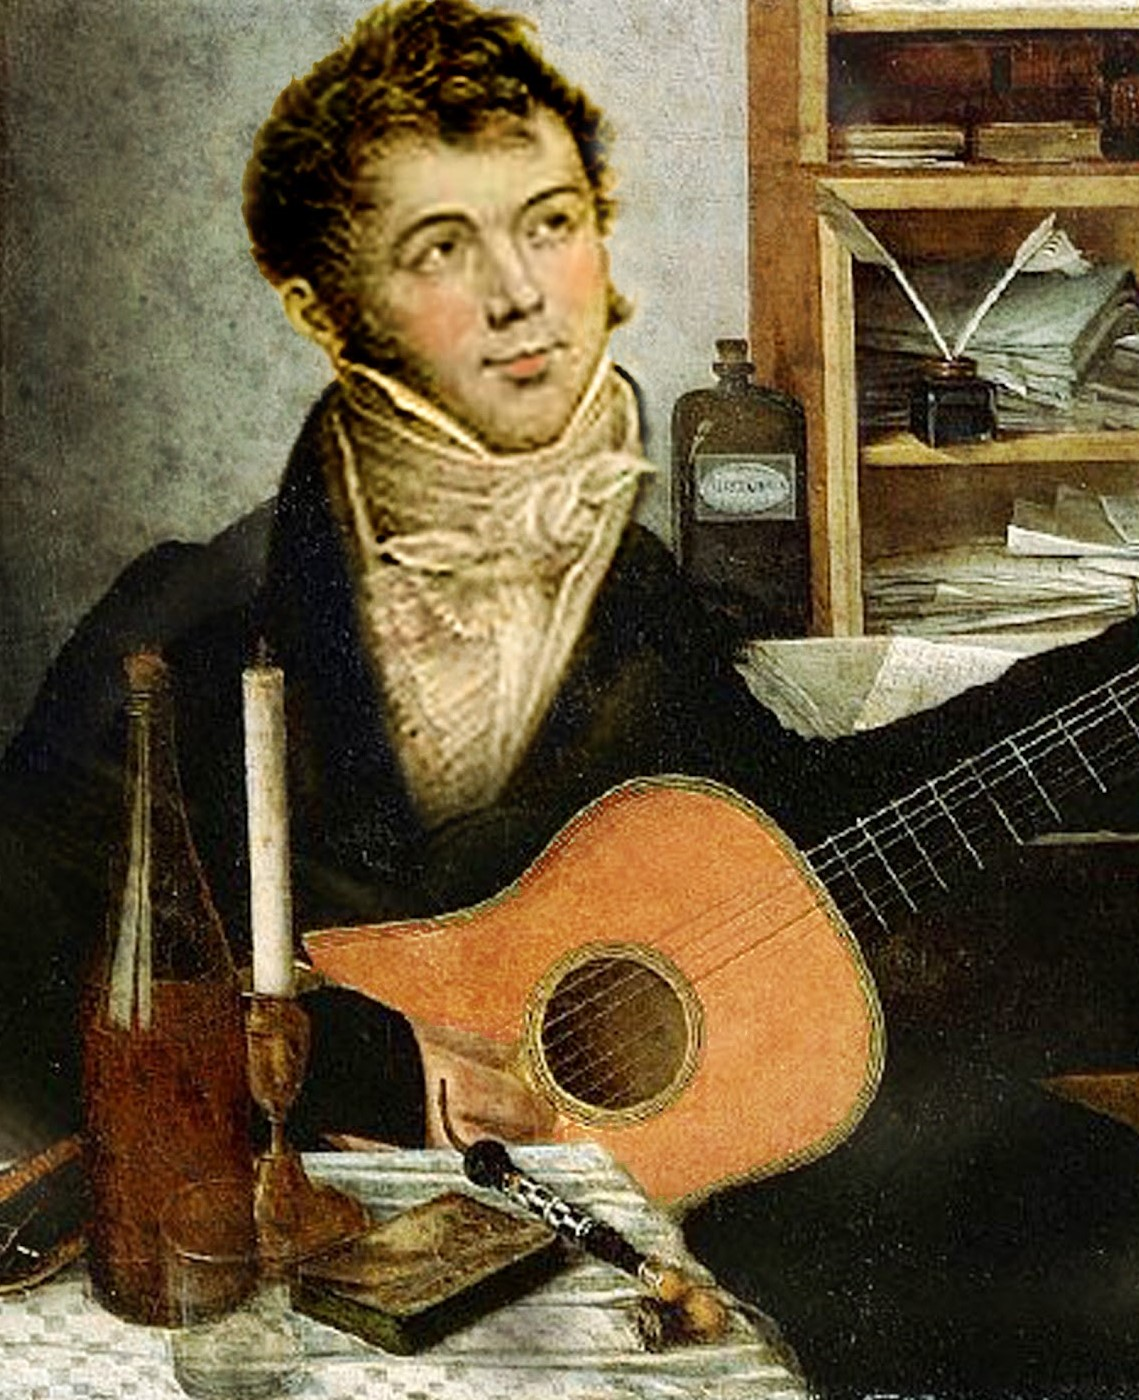 Caption: Guitarist and Composer Fernando Sor